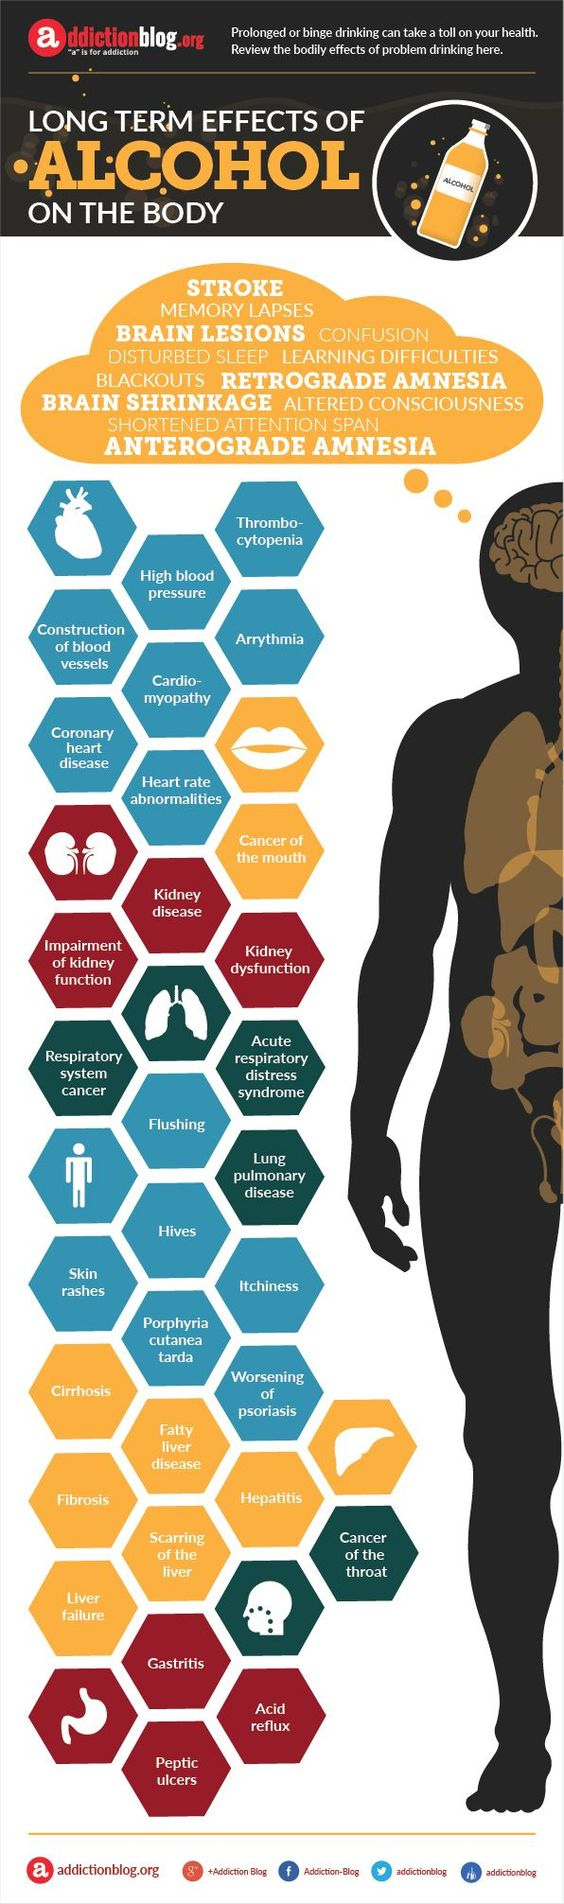 long term effects of alcohol on the body